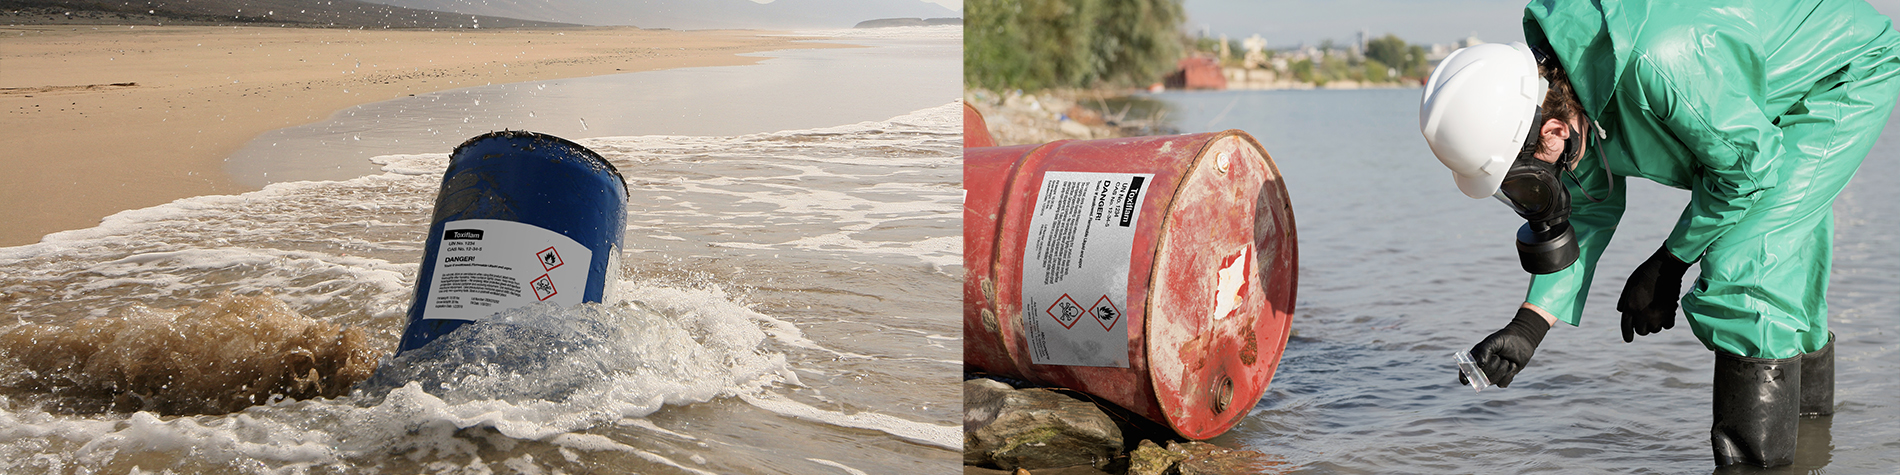 label-markets-ghs-chemical-labels-drum-barrel-ocean-bs5609-dls